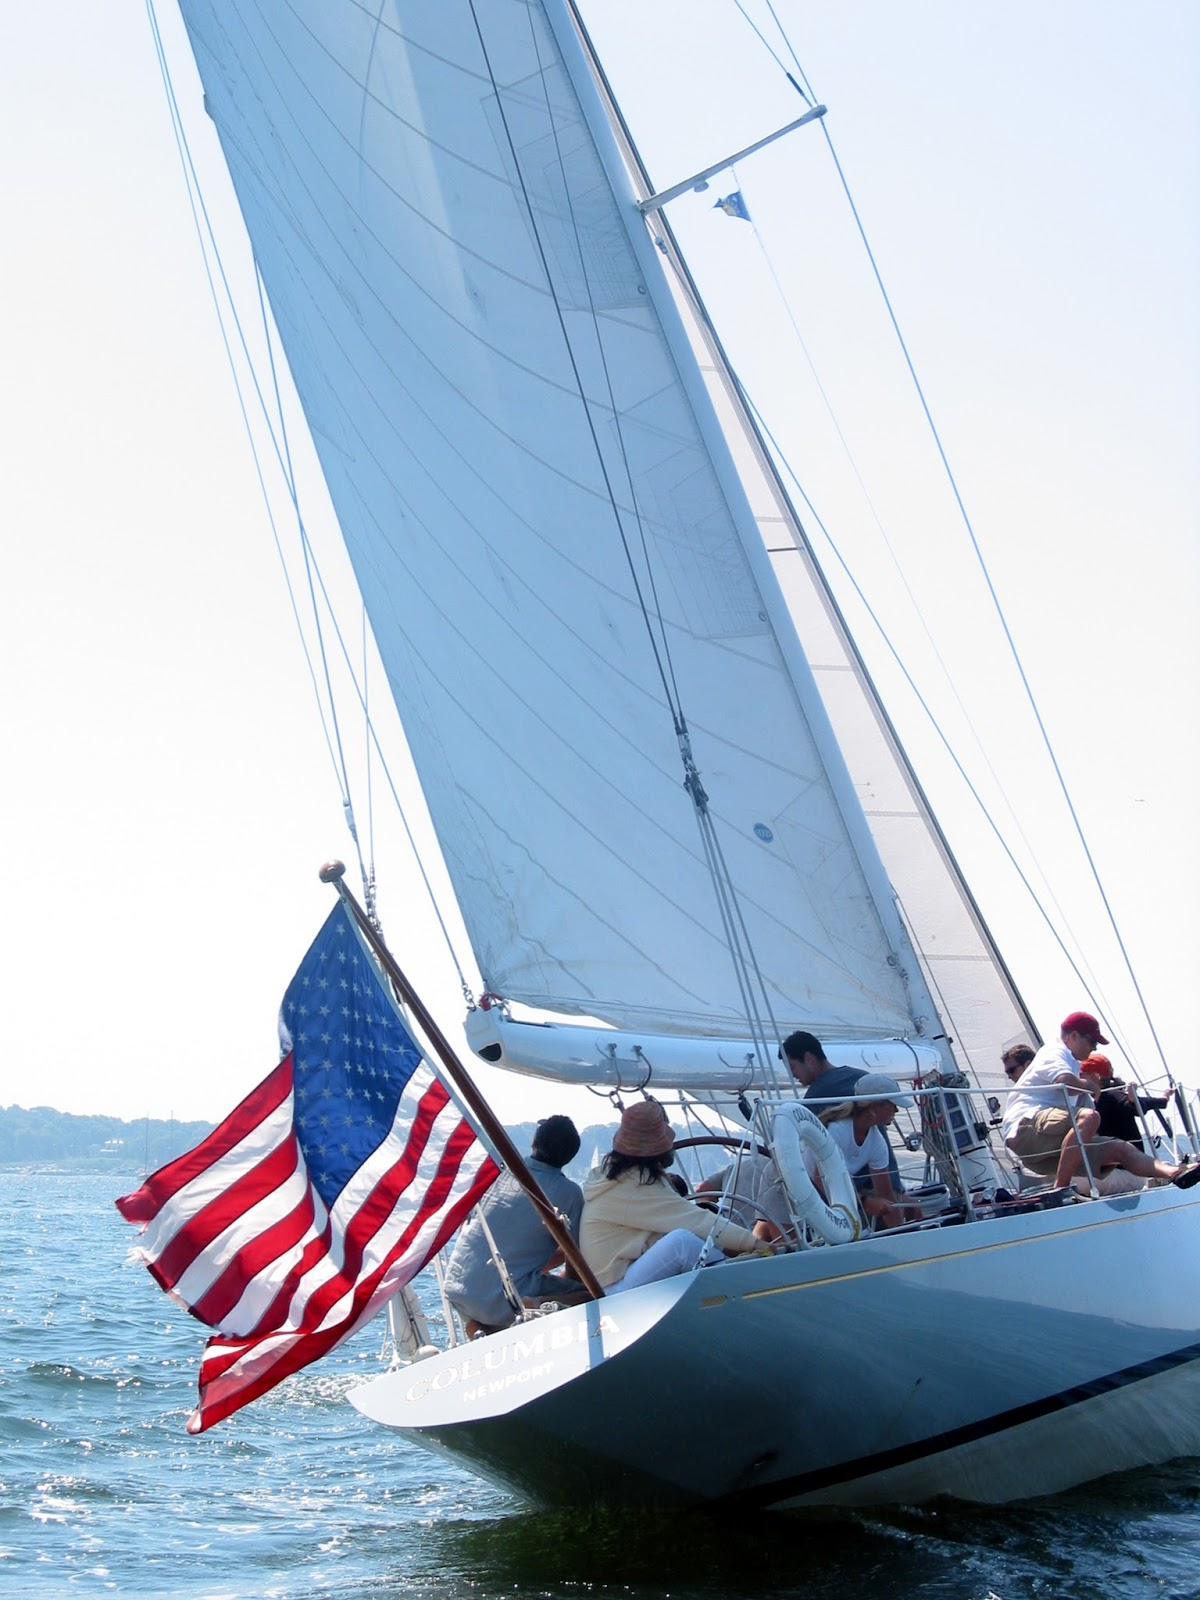 12 Meter Charters Sailing In Newport RI Happy Flag Day From Newport Rhode Island